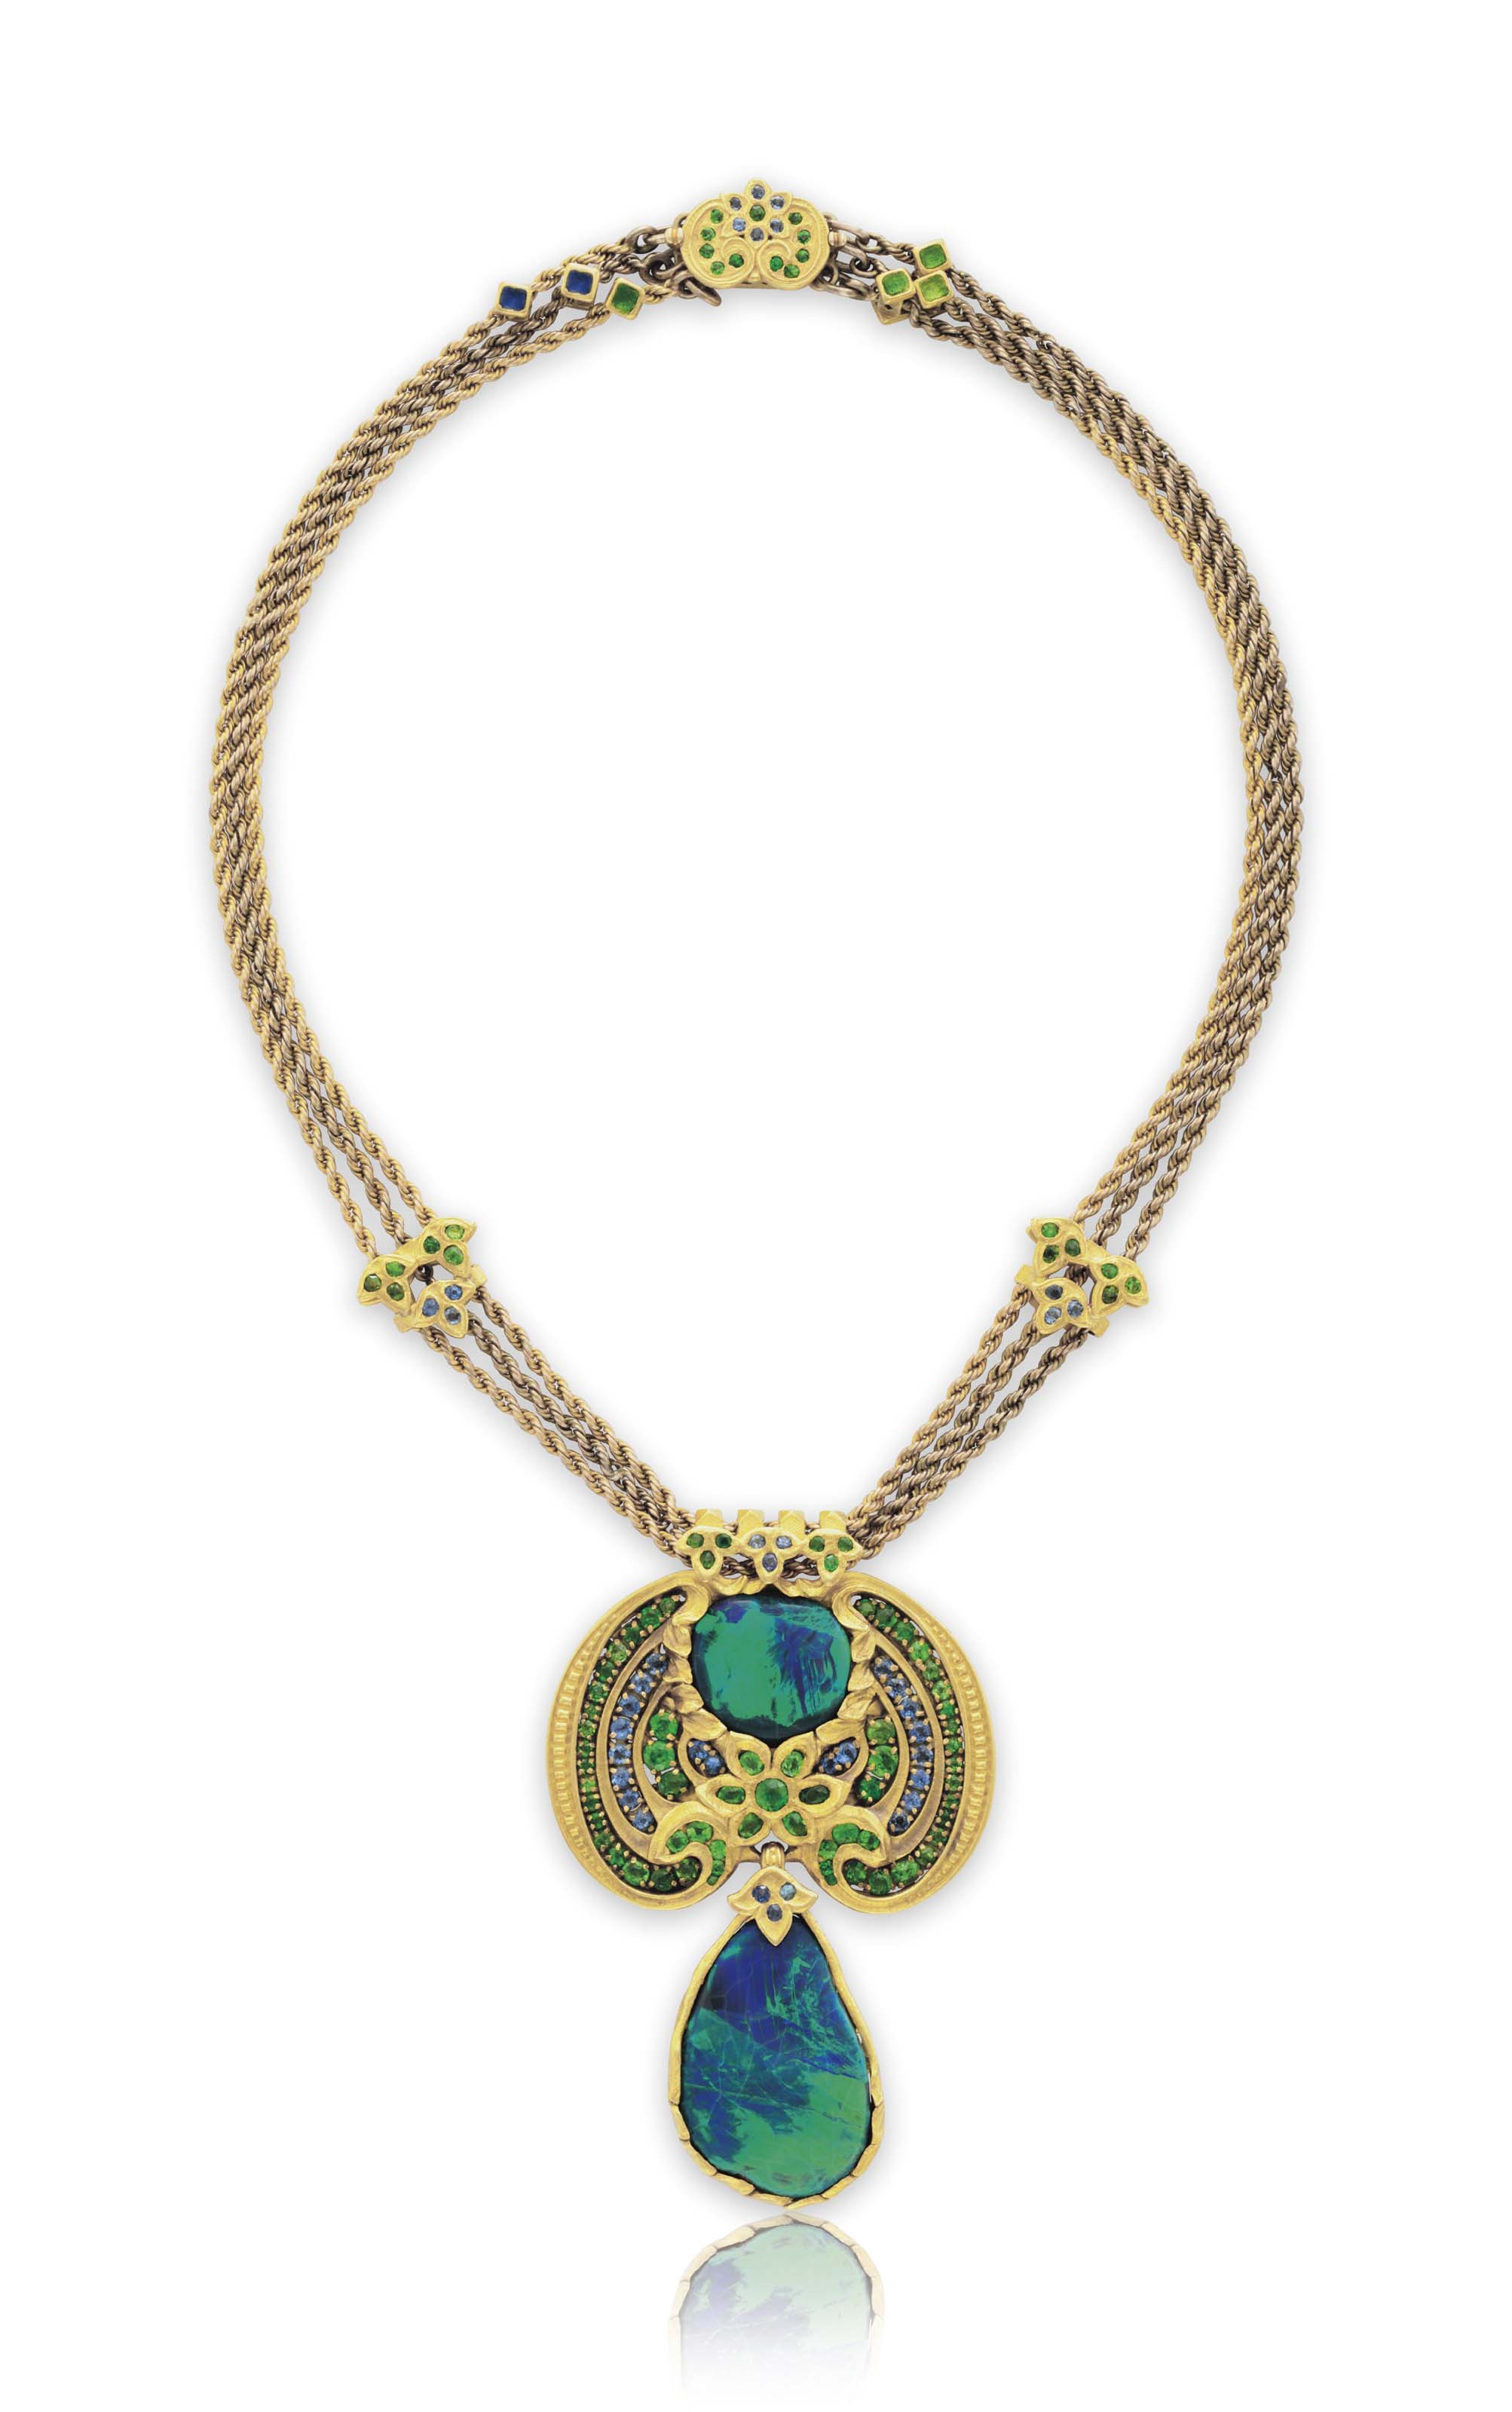 A BLACK OPAL, DEMANTOID GARNET, SAPPHIRE AND ENAMEL NECKLACE, BY LOUIS COMFORT TIFFANY, TIFFANY & CO.